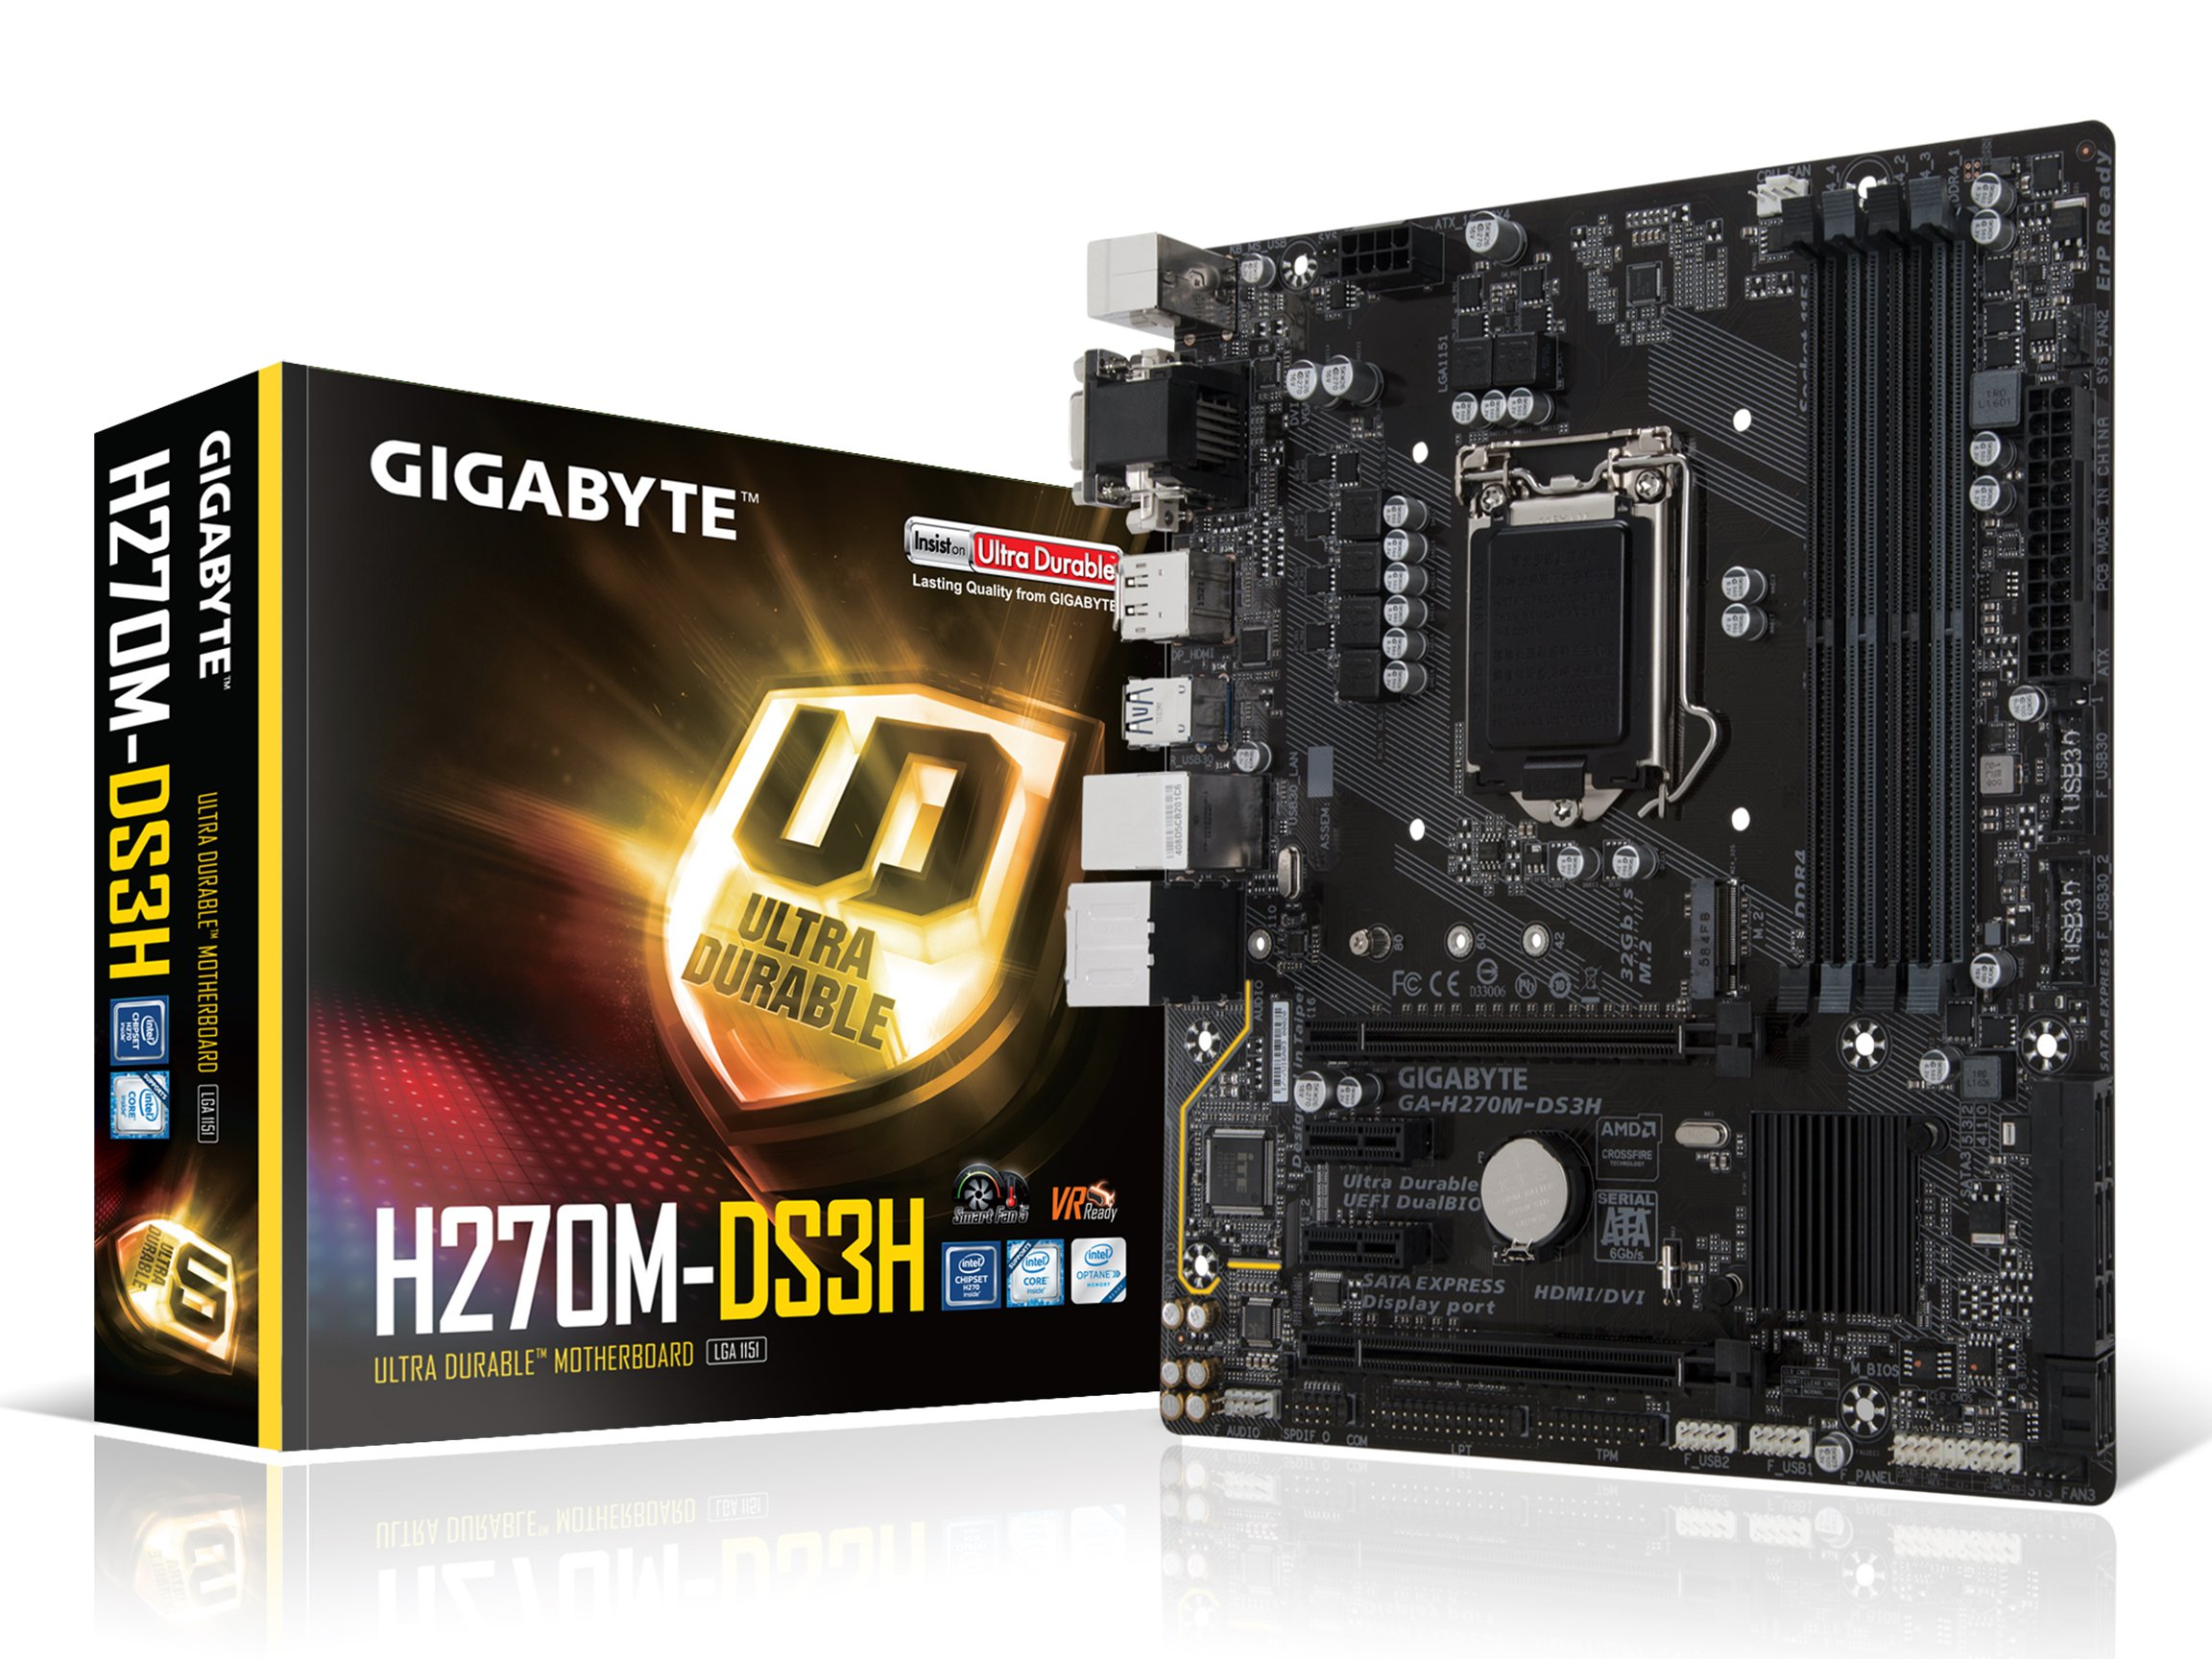 GIGABYTE GA-H270M-DS3H LGA1151 Intel H270 2-Way Crossfire Micro ATX DDR4 Motherboard by Gigabyte